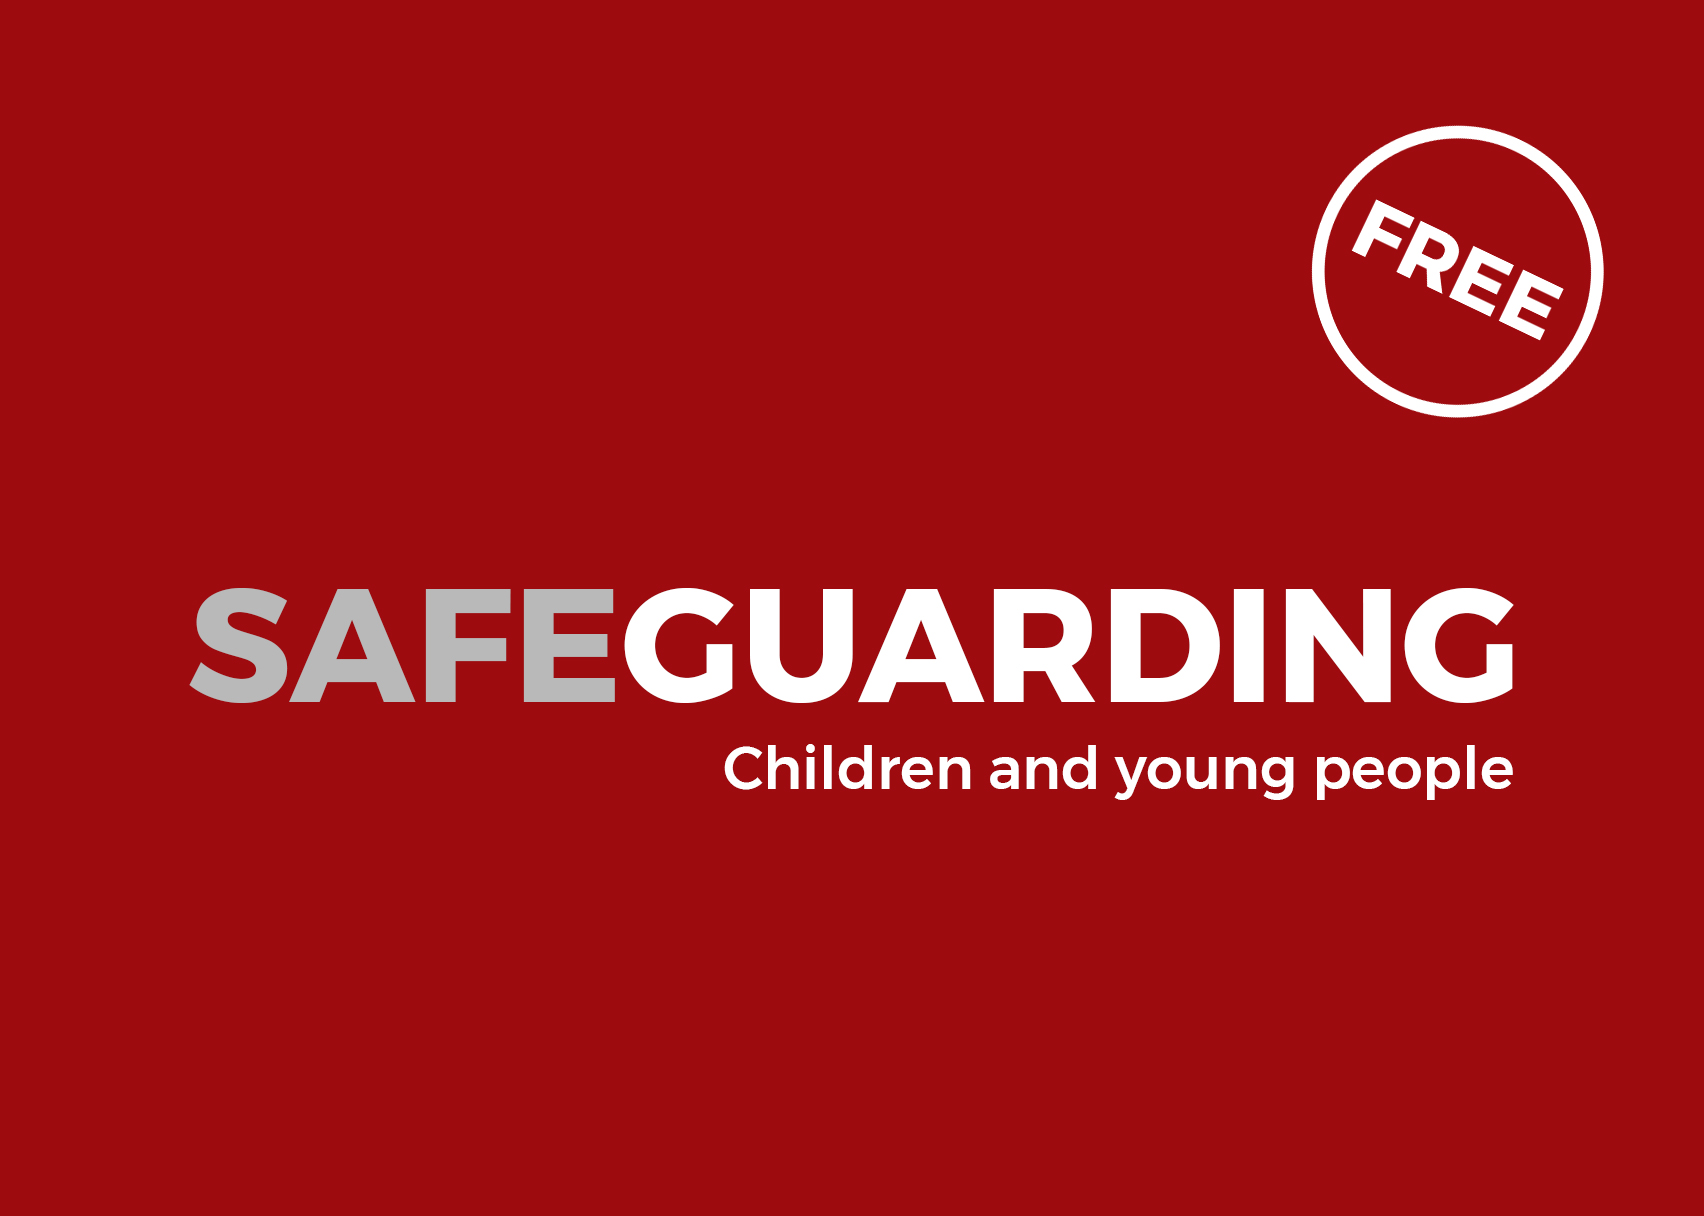 current ni legislation guidance for safeguarding Safeguarding legislation and guidance is always evolving, so although this document is written in good faith, over time there may be changes to keep up-to-date with.